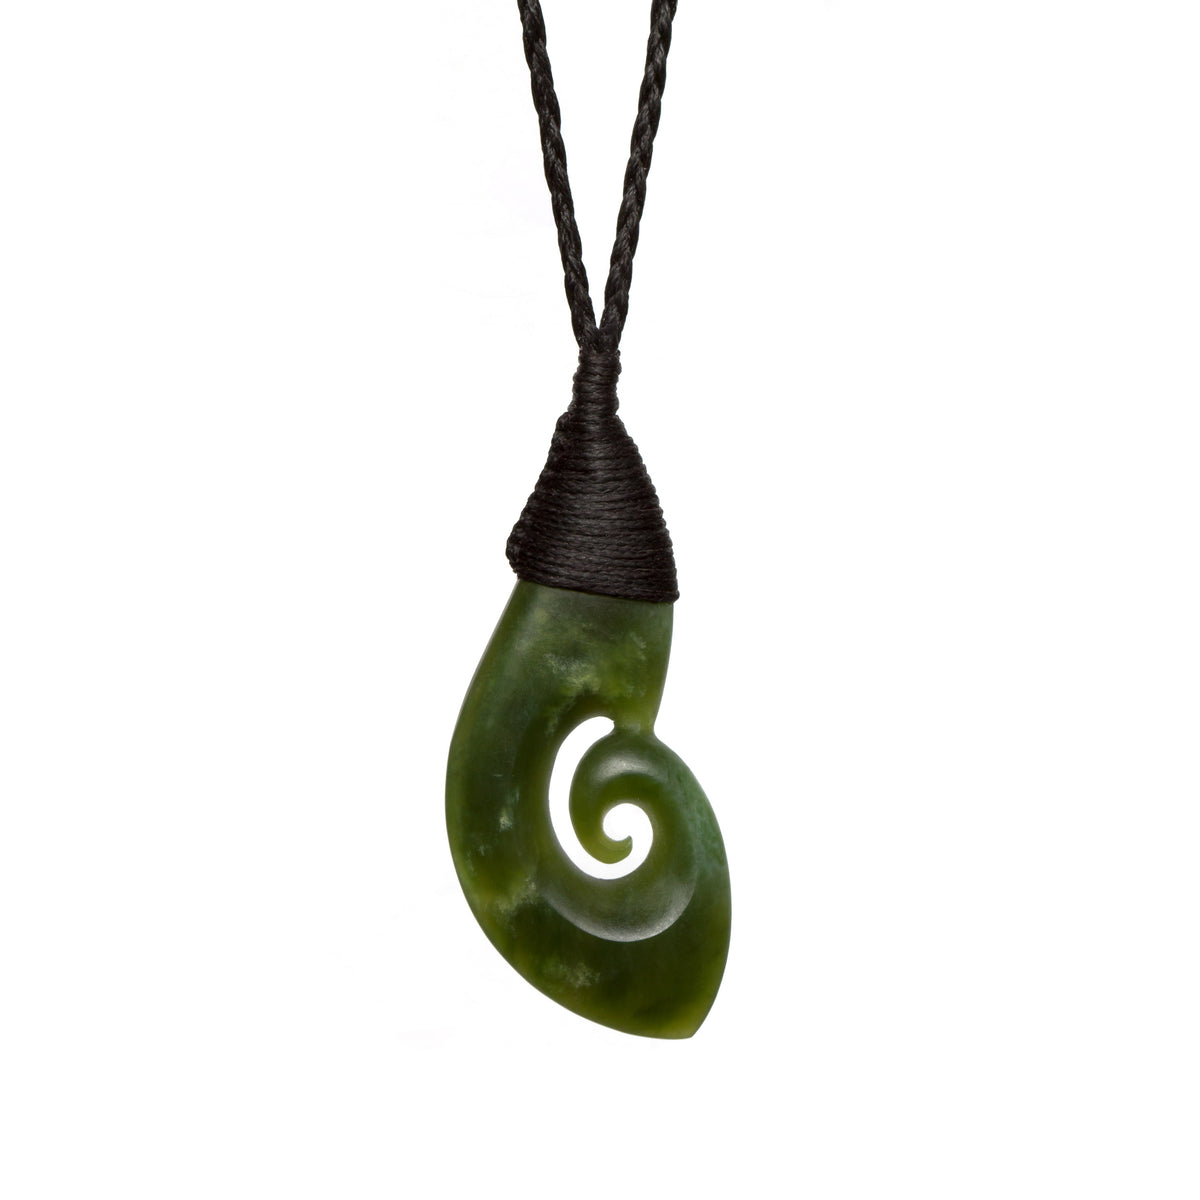 52mm x 25mm / New Zealand Pounamu // AKAKOHK298P-2